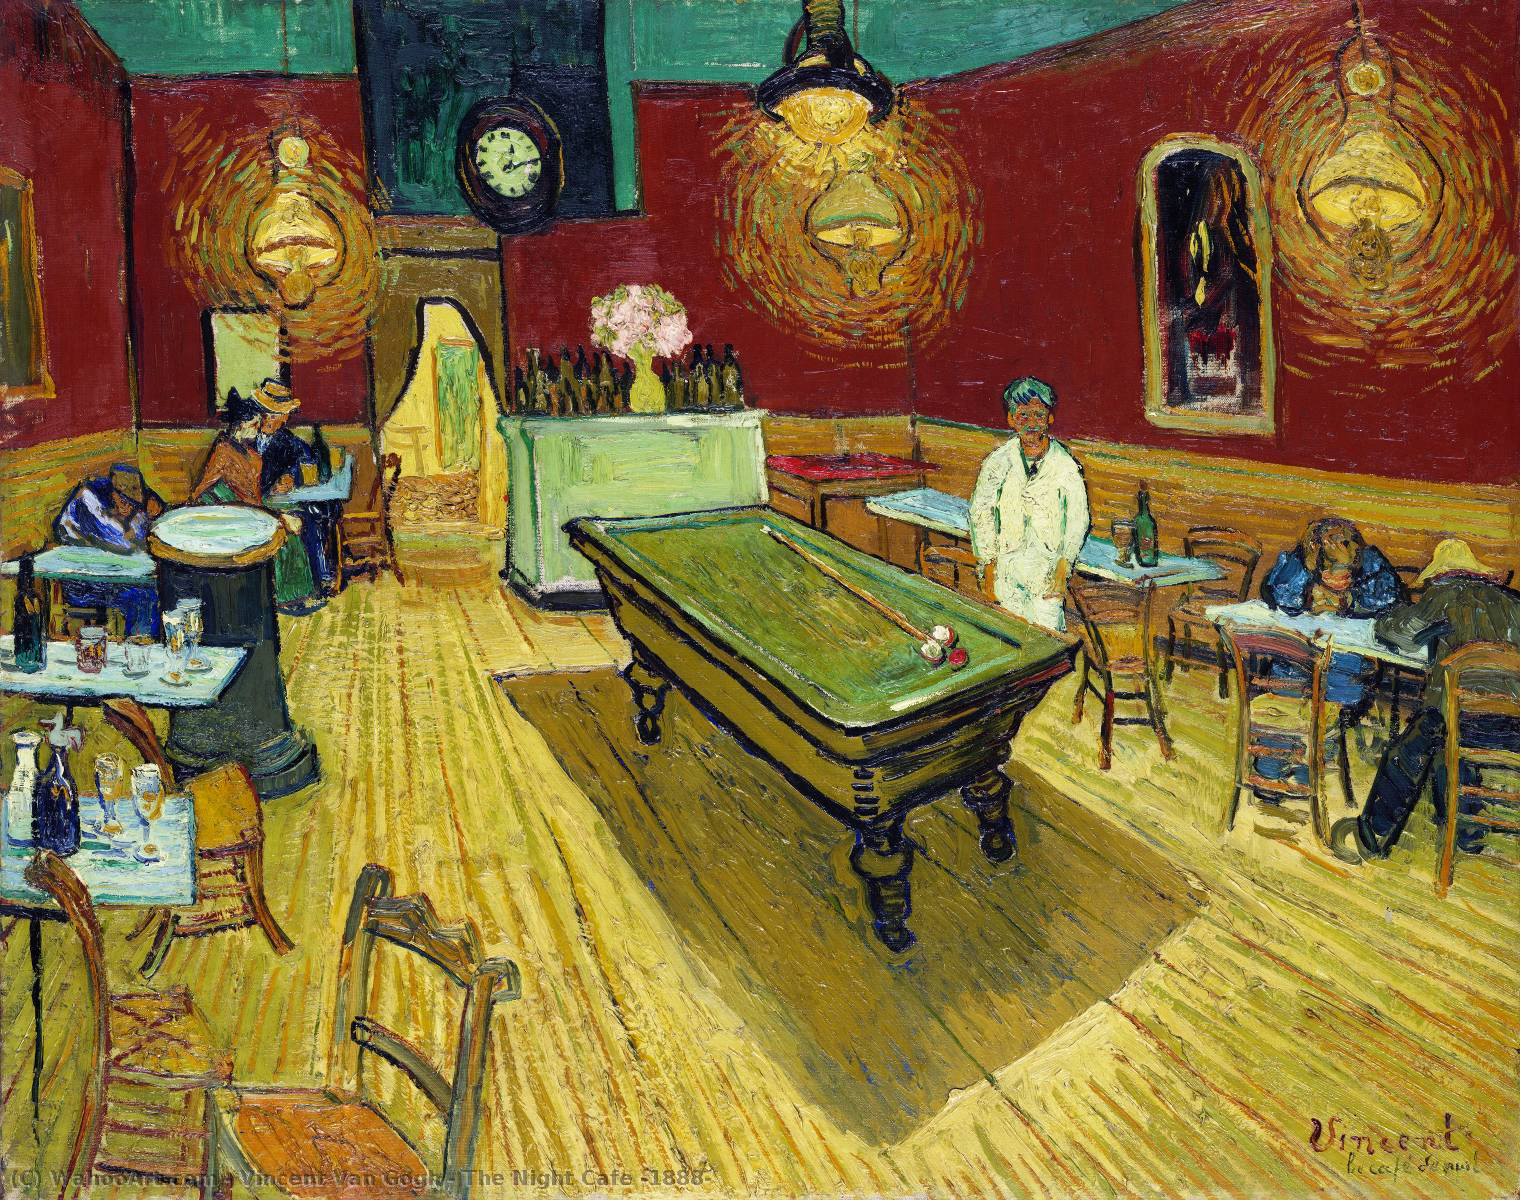 famous painting The Night Cafe [1888] of Vincent Van Gogh